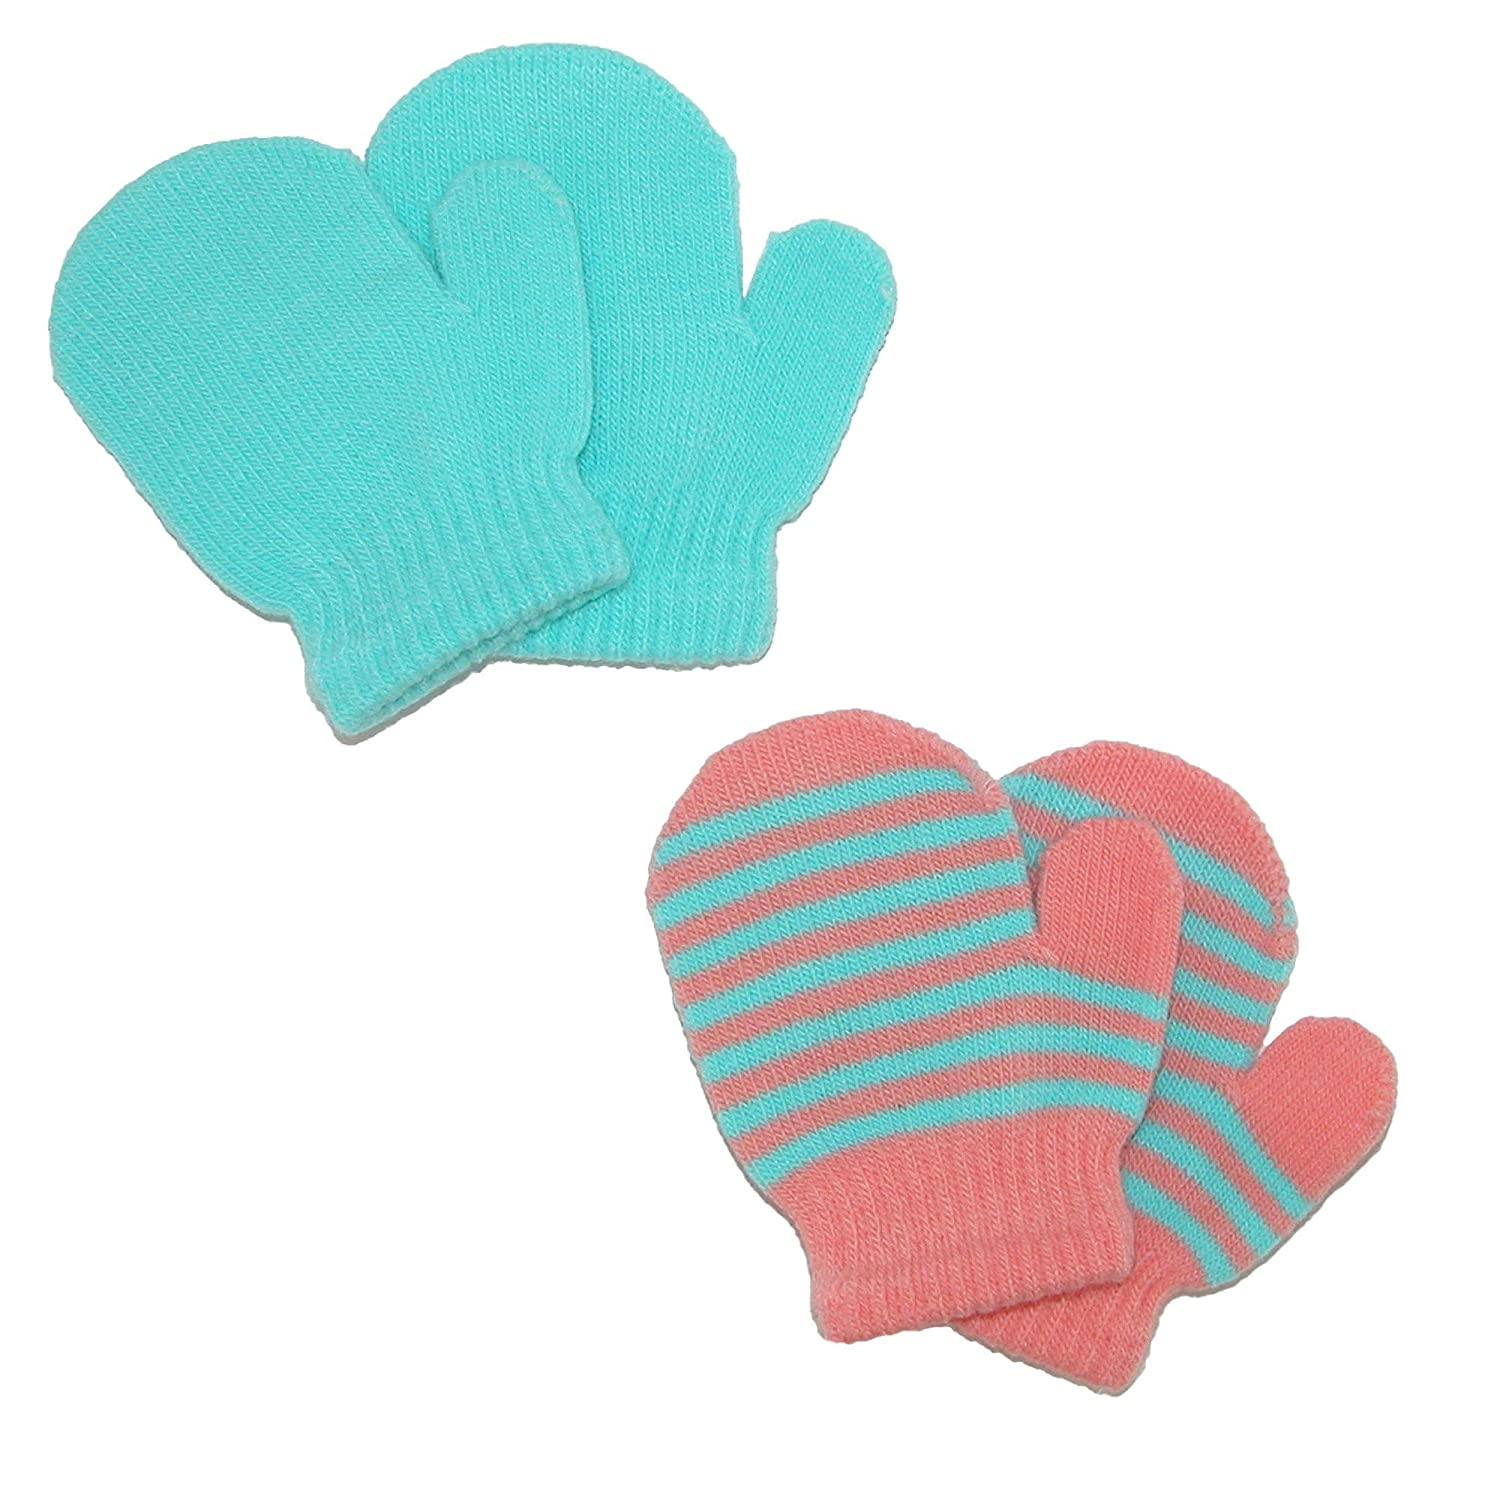 CTM® Toddler's and Infant's 2 Stretch Mittens, Light Blue GM-MG1060-LTB